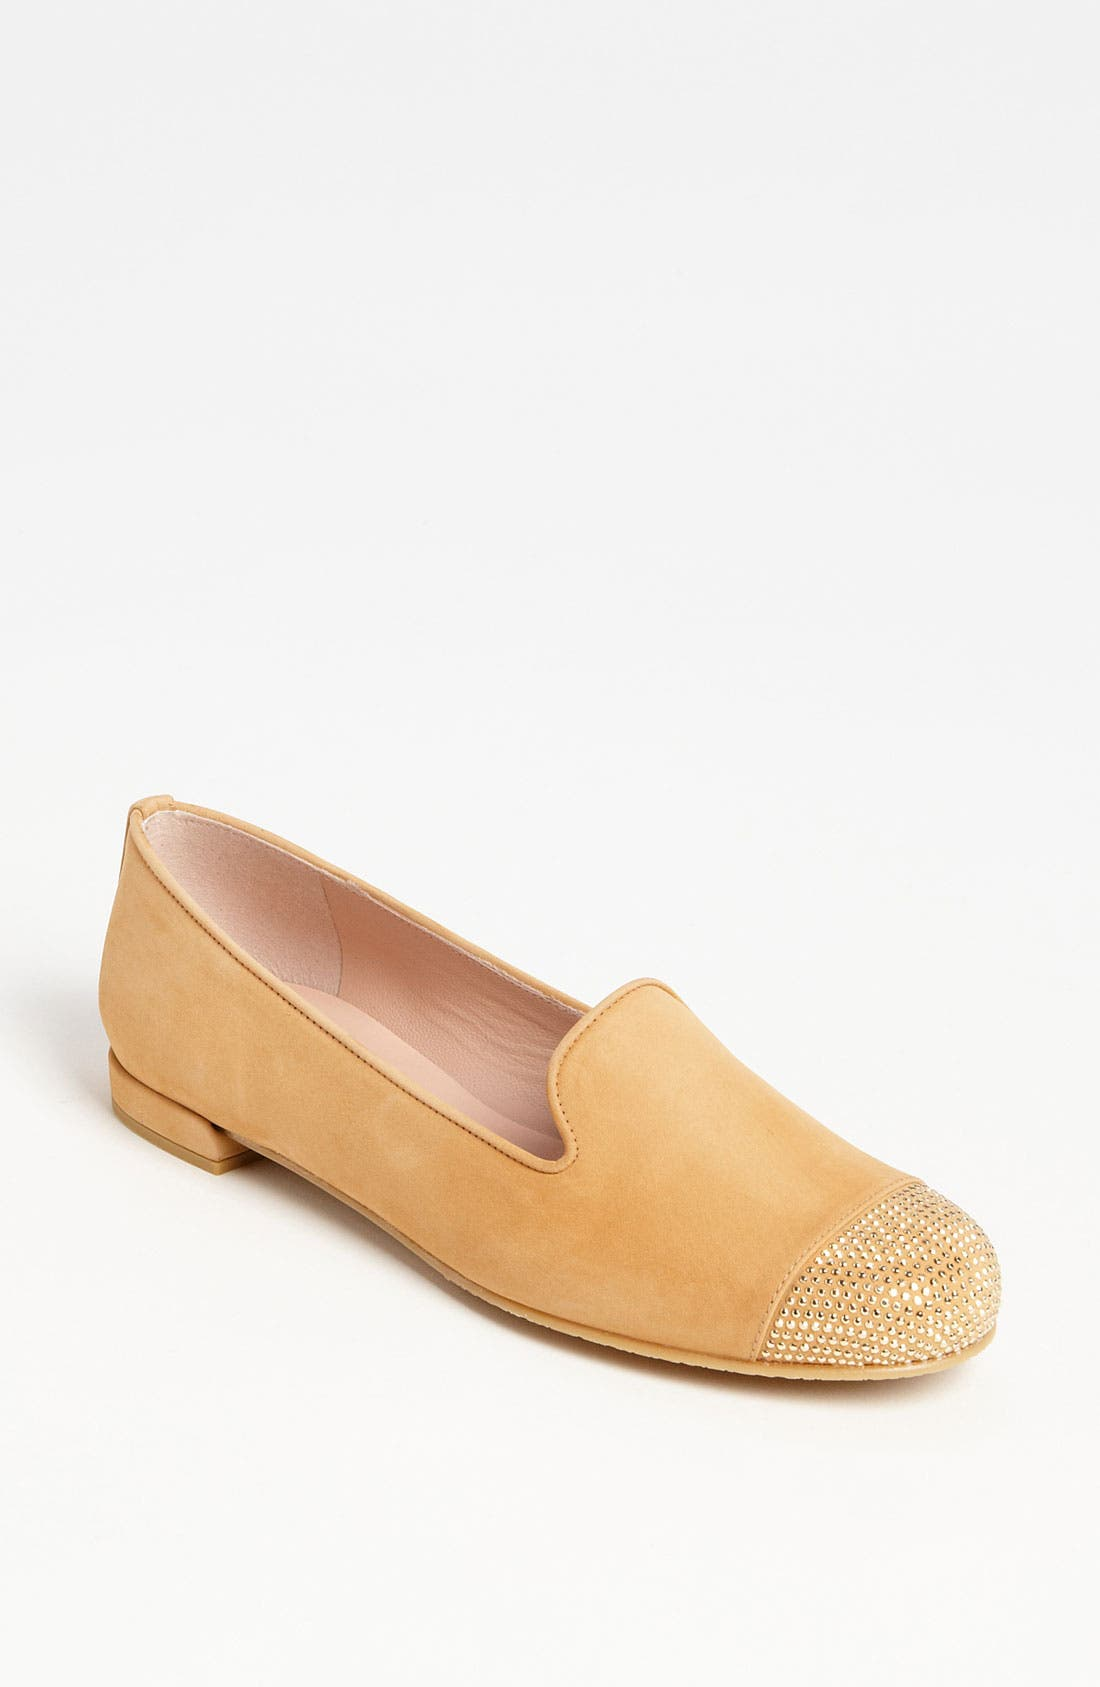 Alternate Image 1 Selected - Stuart Weitzman 'Lingo' Loafer